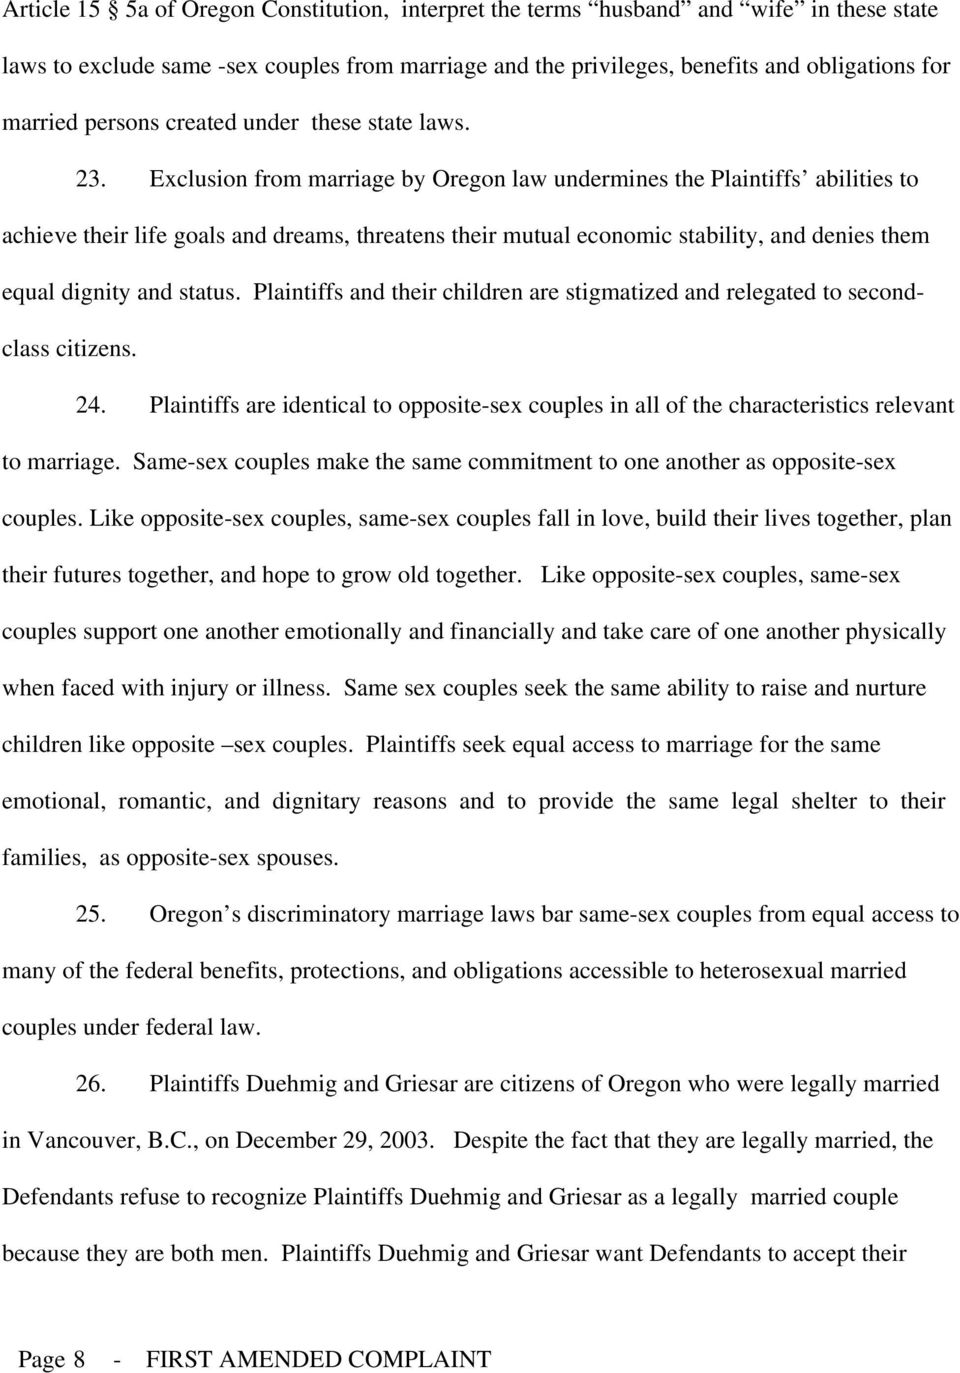 Exclusion from marriage by Oregon law undermines the Plaintiffs abilities to achieve their life goals and dreams, threatens their mutual economic stability, and denies them equal dignity and status.